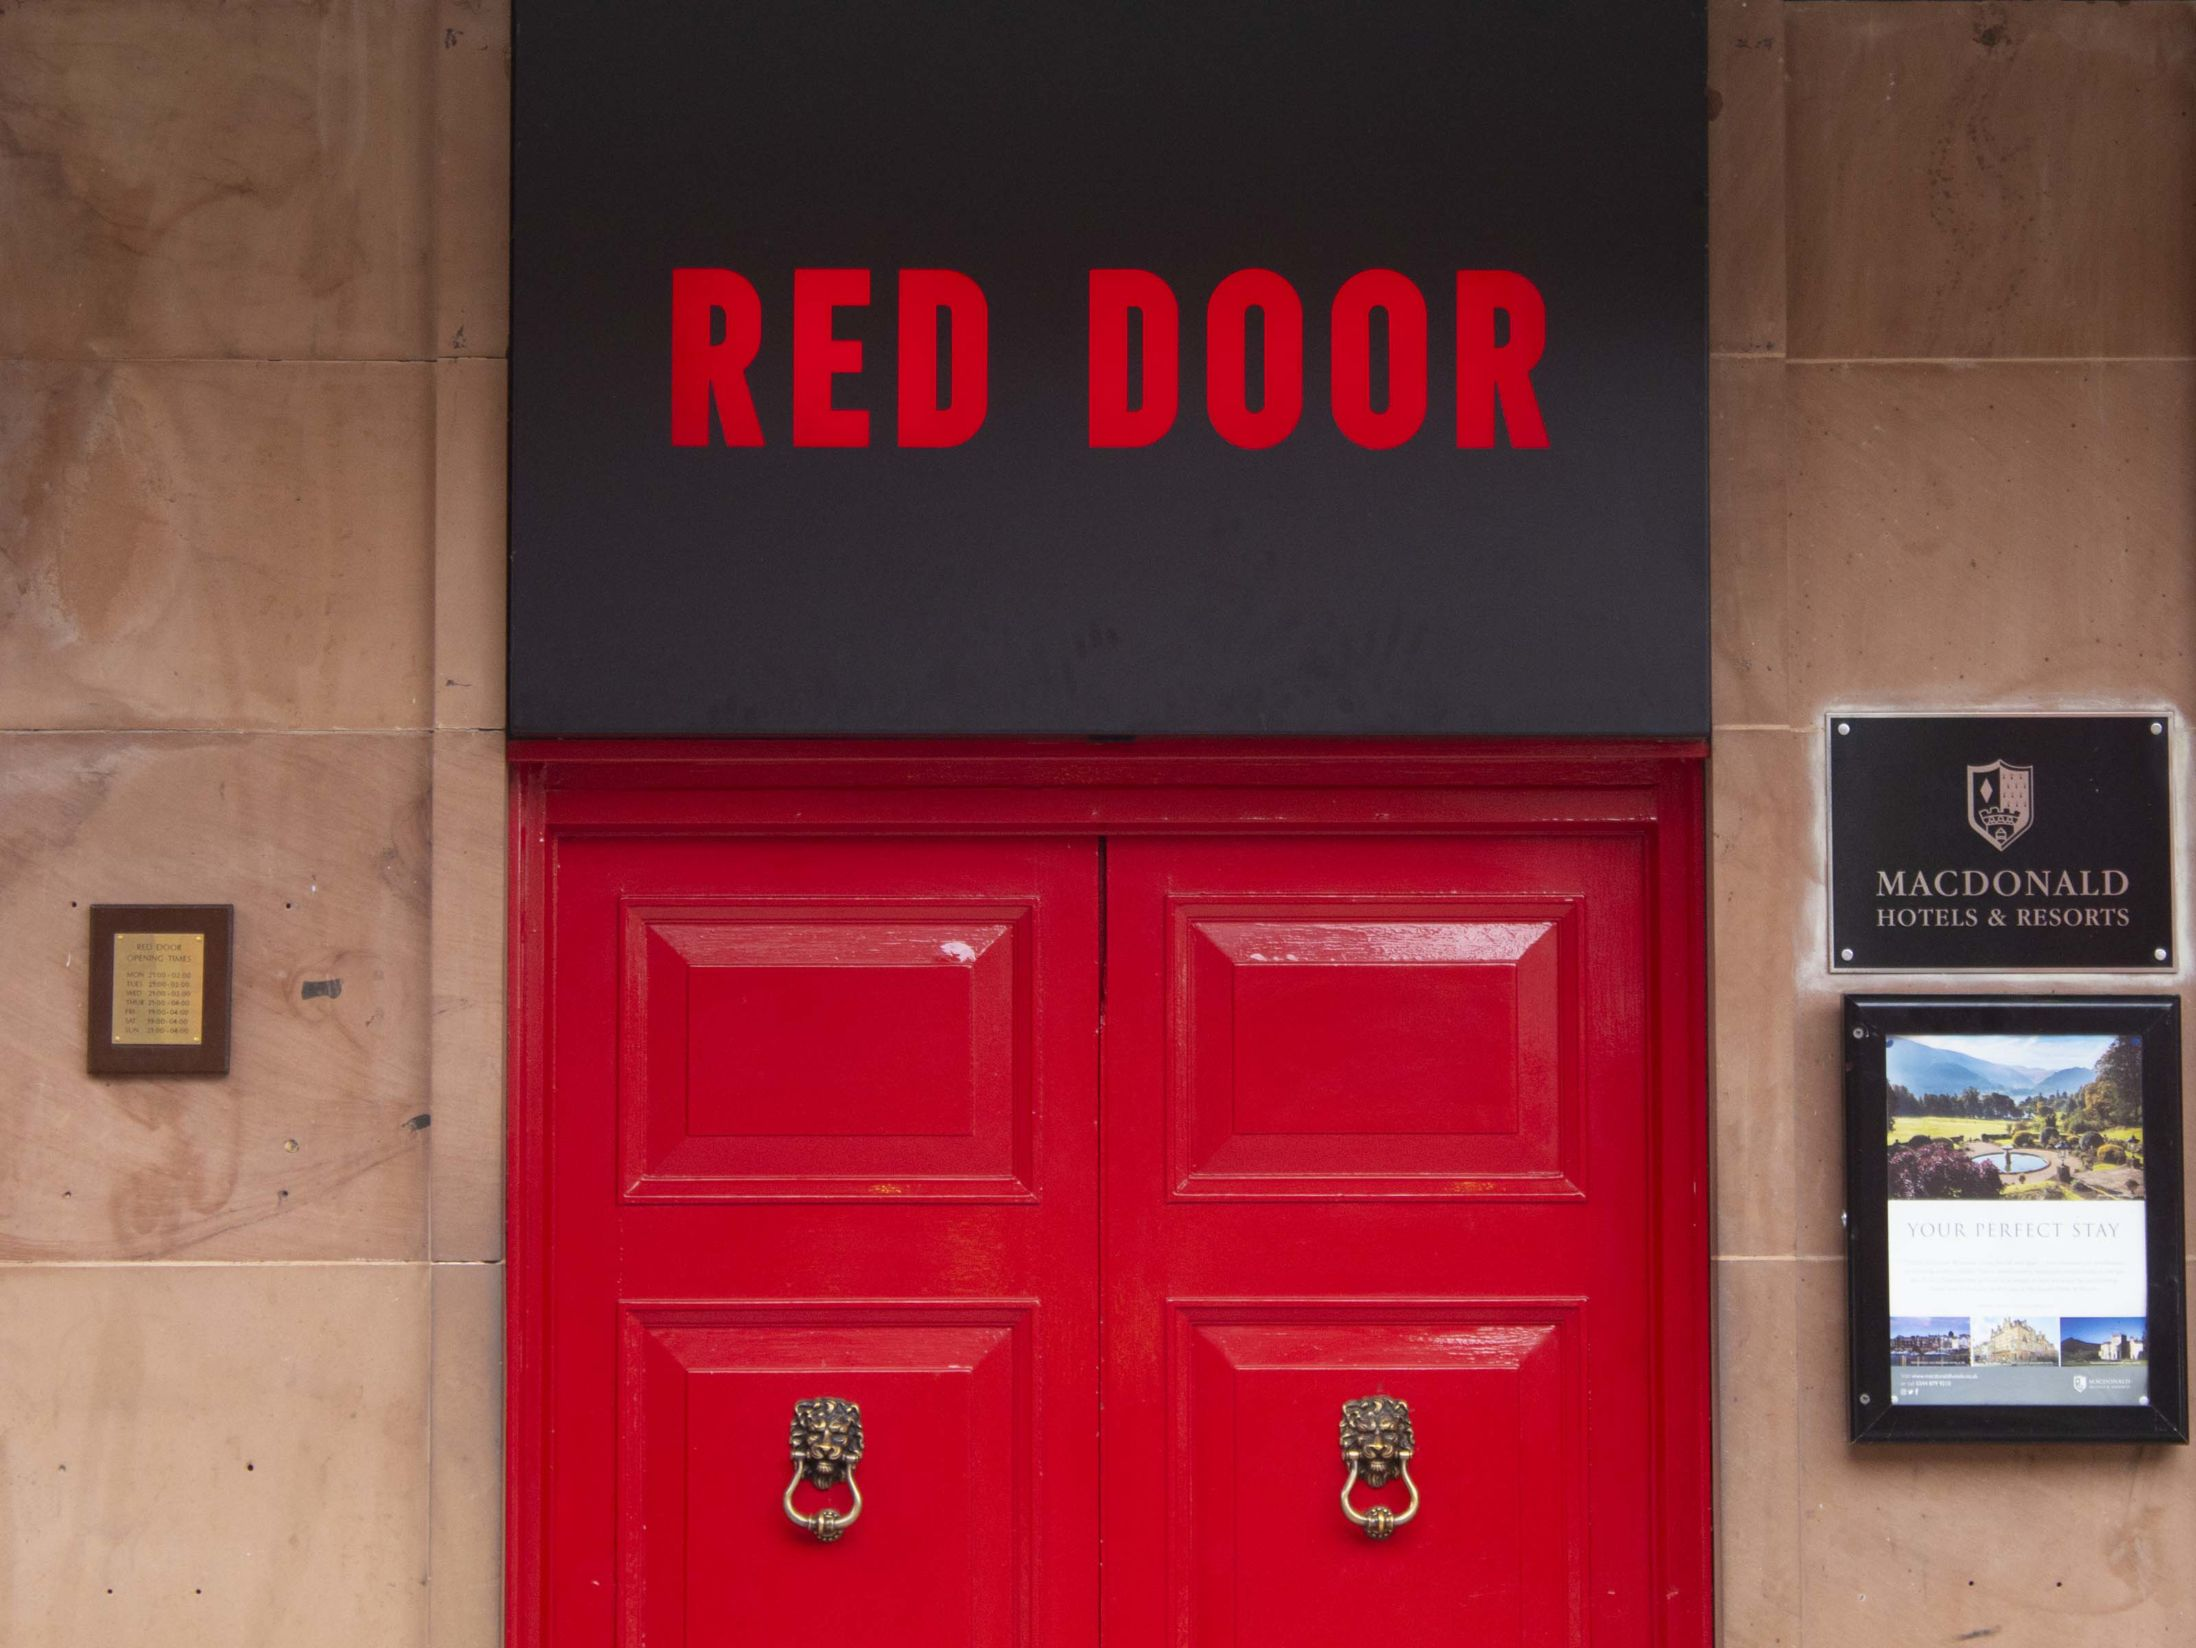 Red Door - Cocktail Bars in Chester